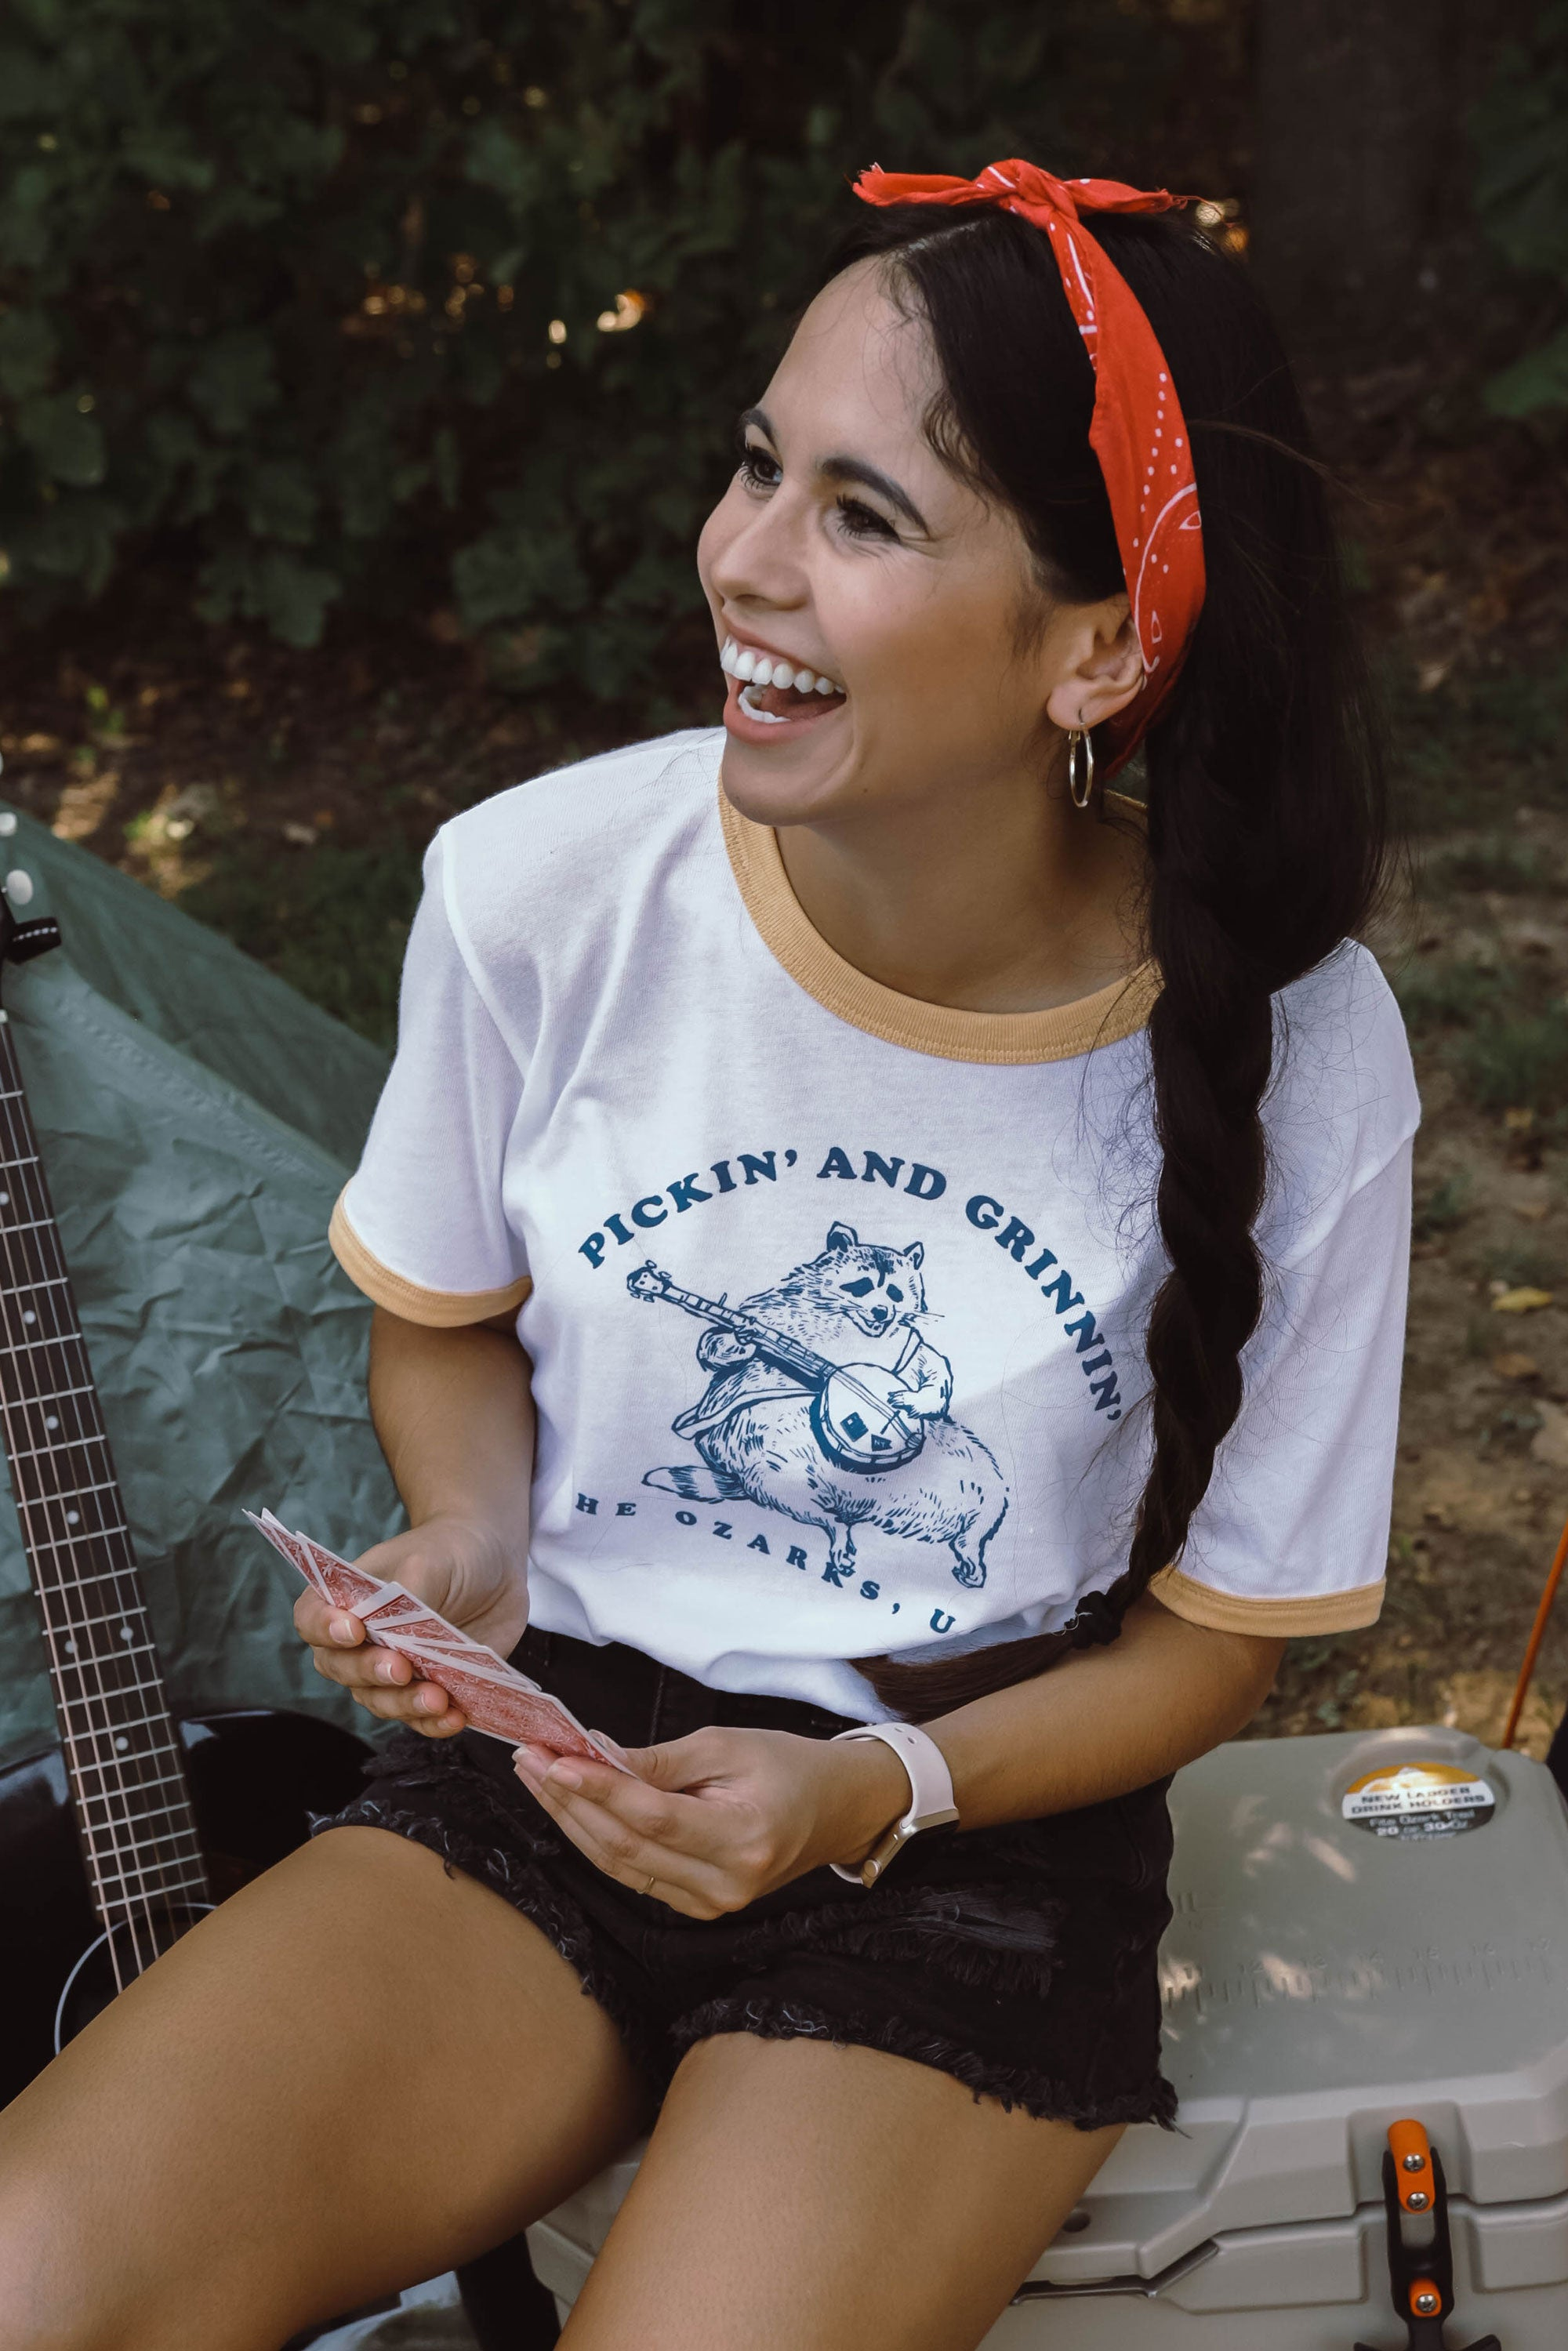 Pickin' And Grinnin' Ringer T-Shirt